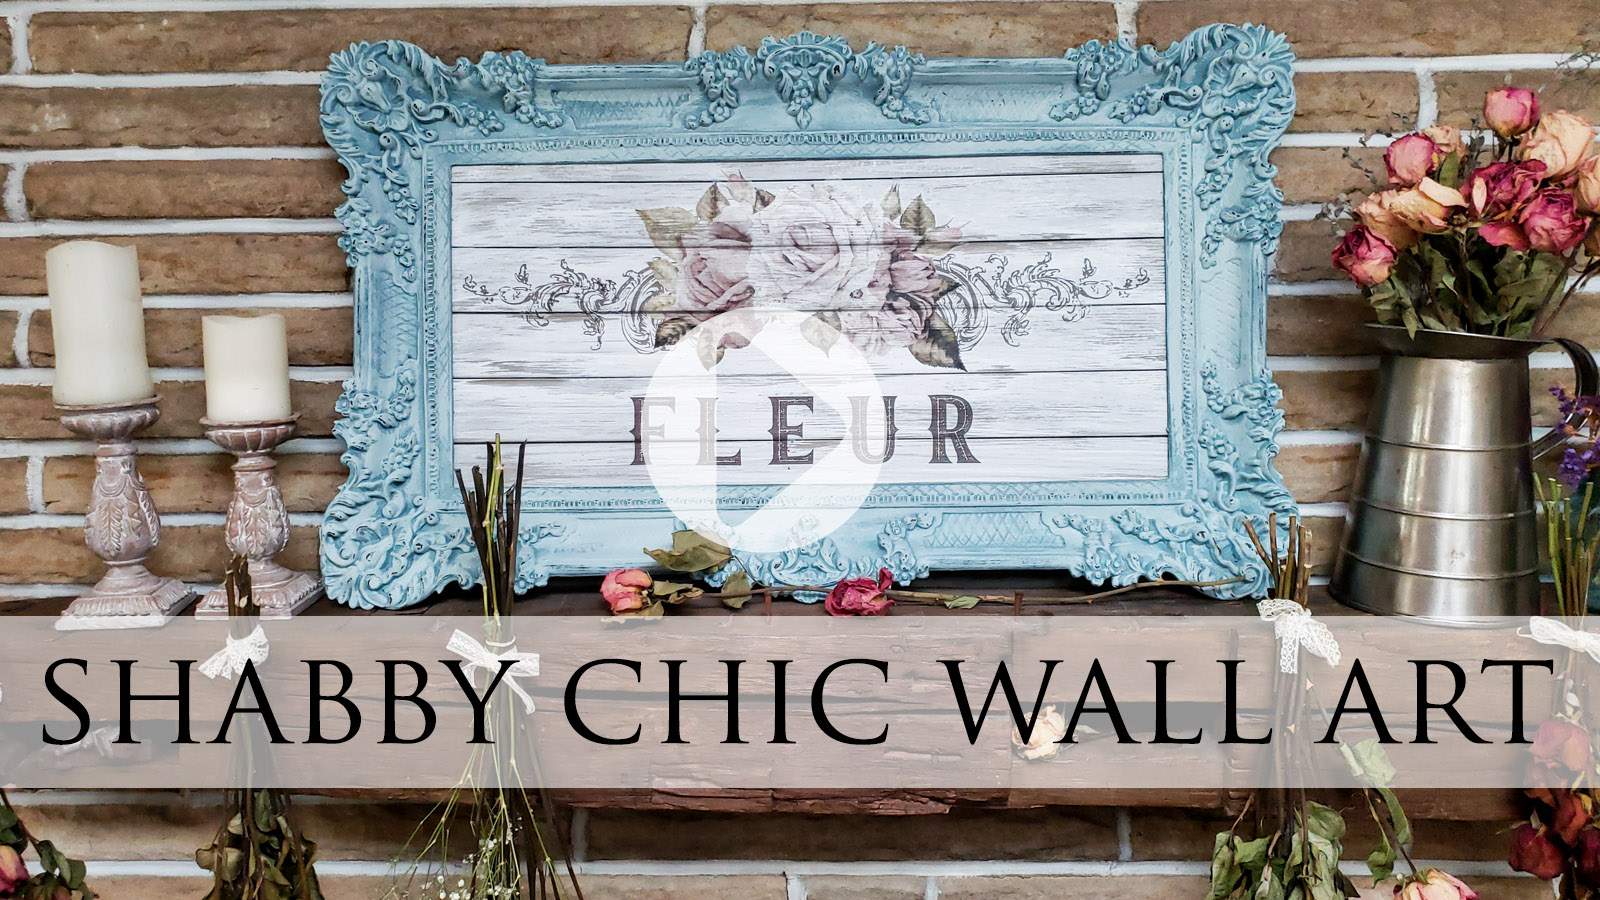 Upcycled Mirror into Shabby Chic Wall Art by Larissa of Prodigal Pieces | prodigalpieces.com